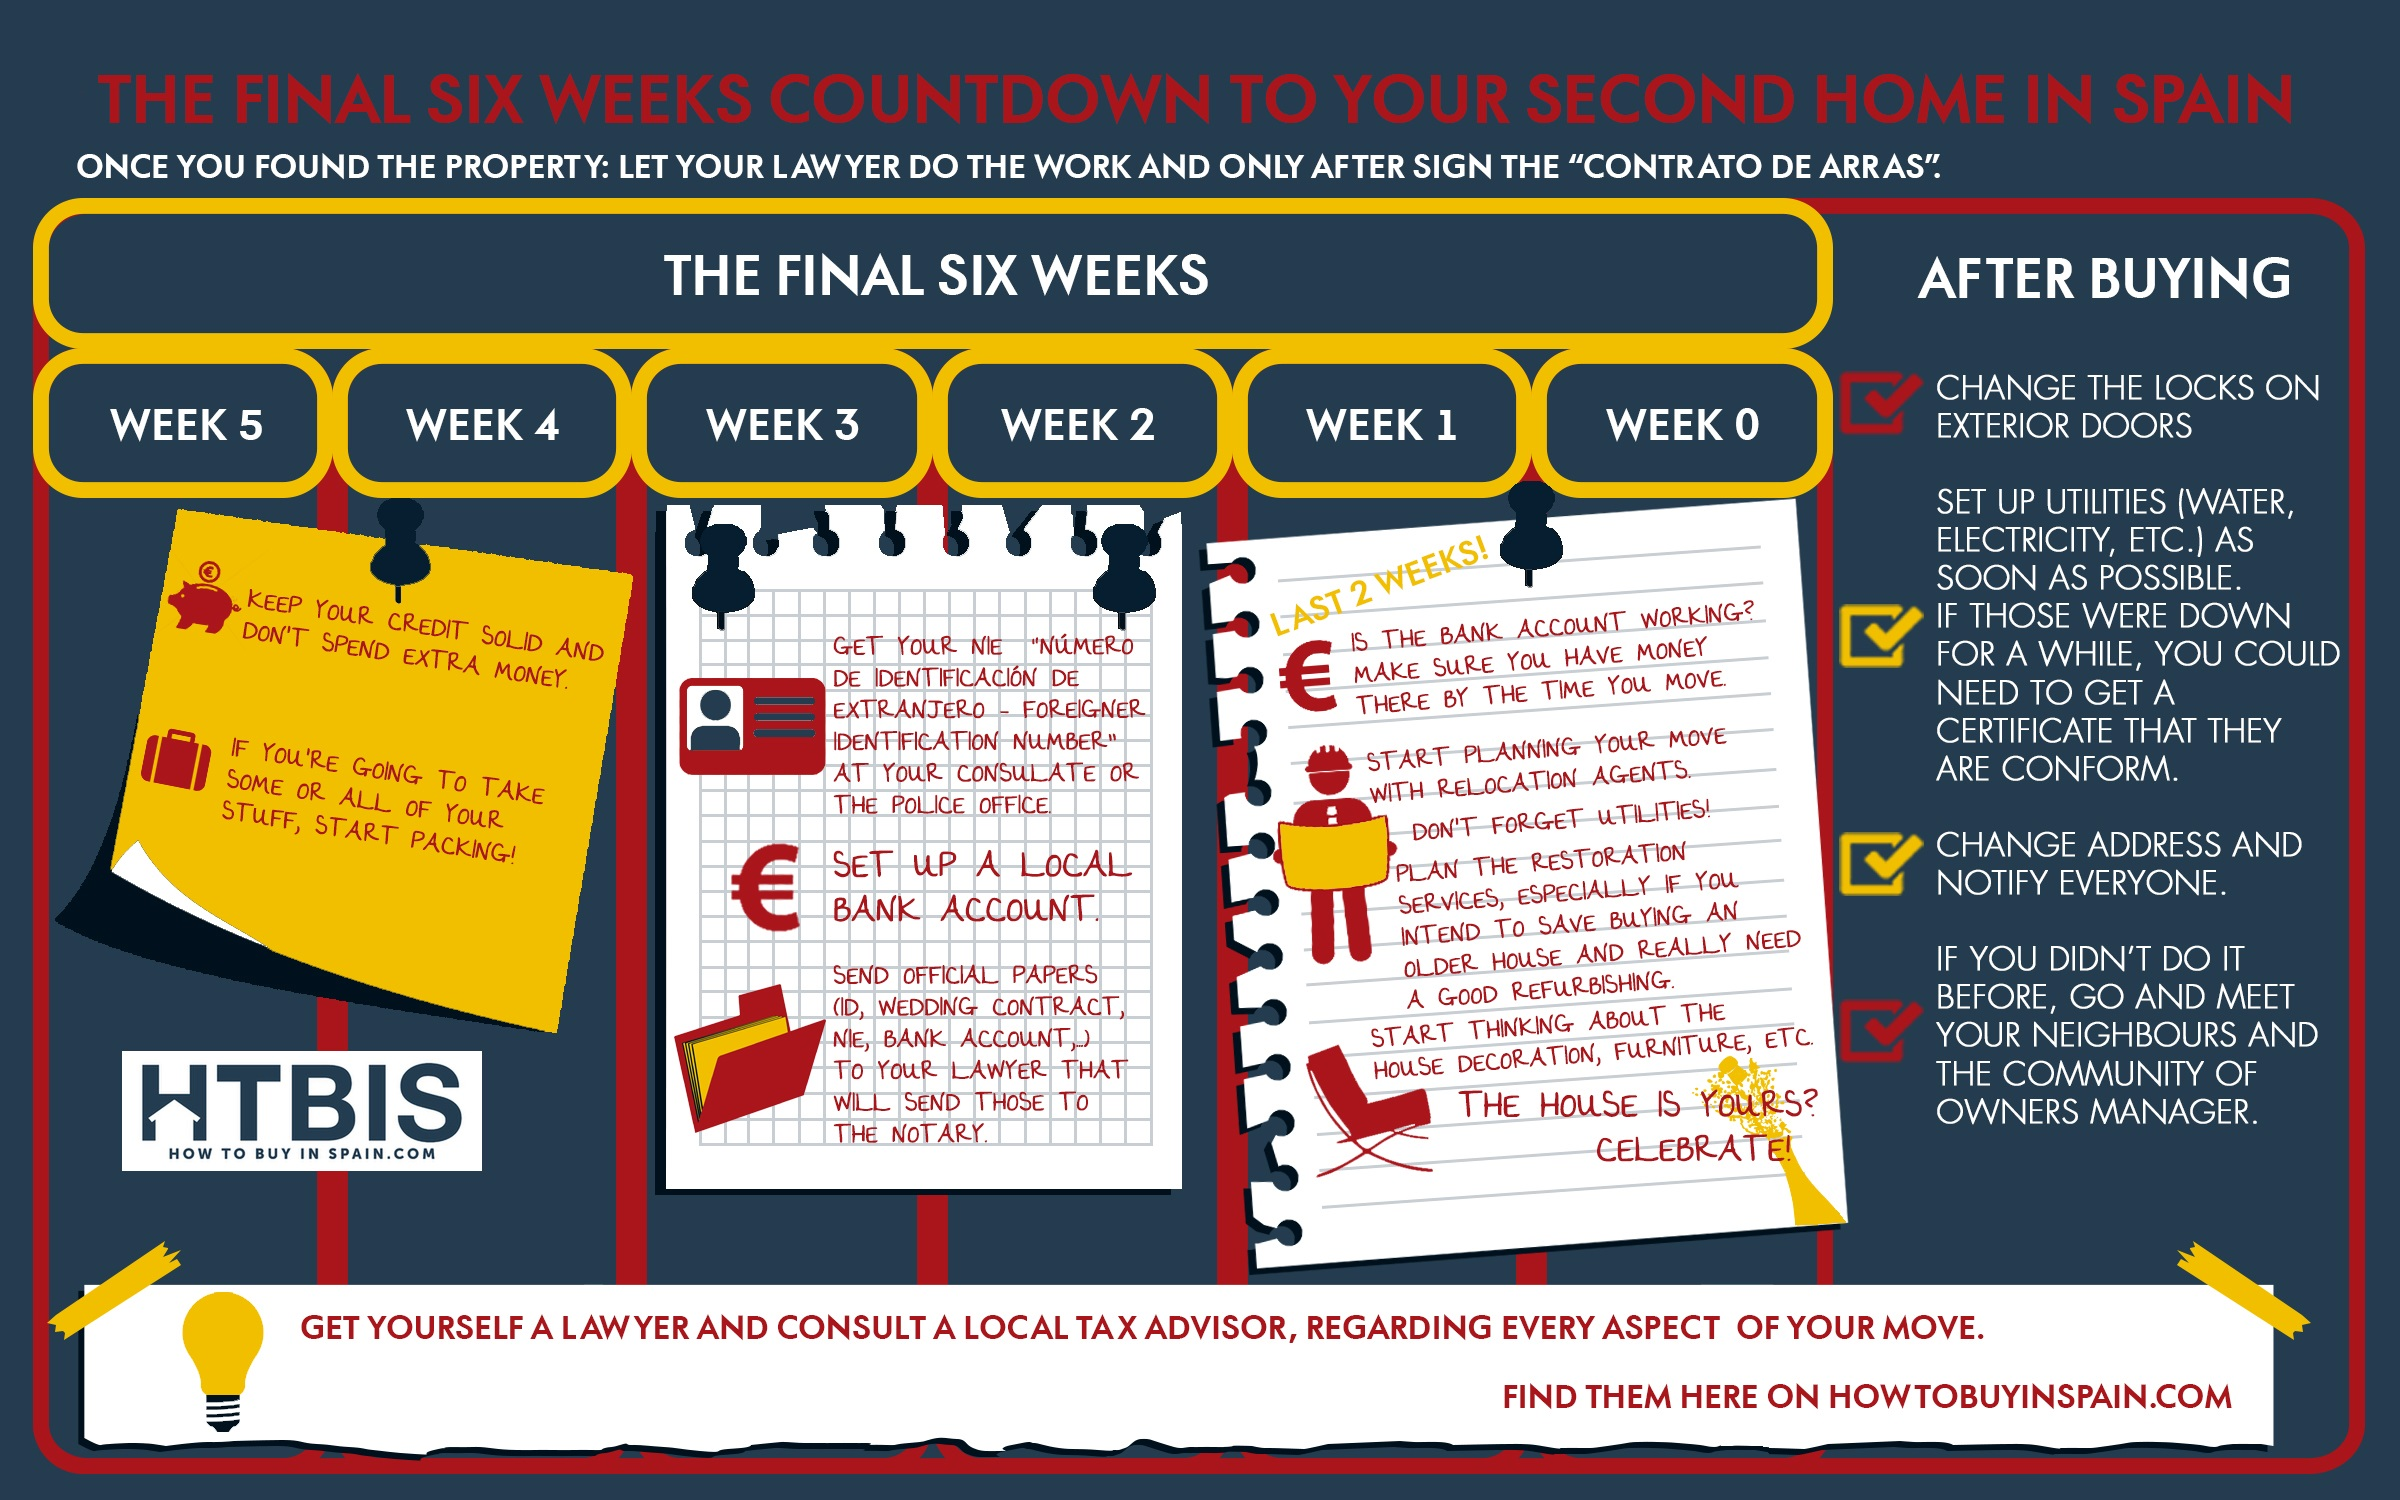 Checklist of the Six weeks countdown to your second home in Spain, Infographic